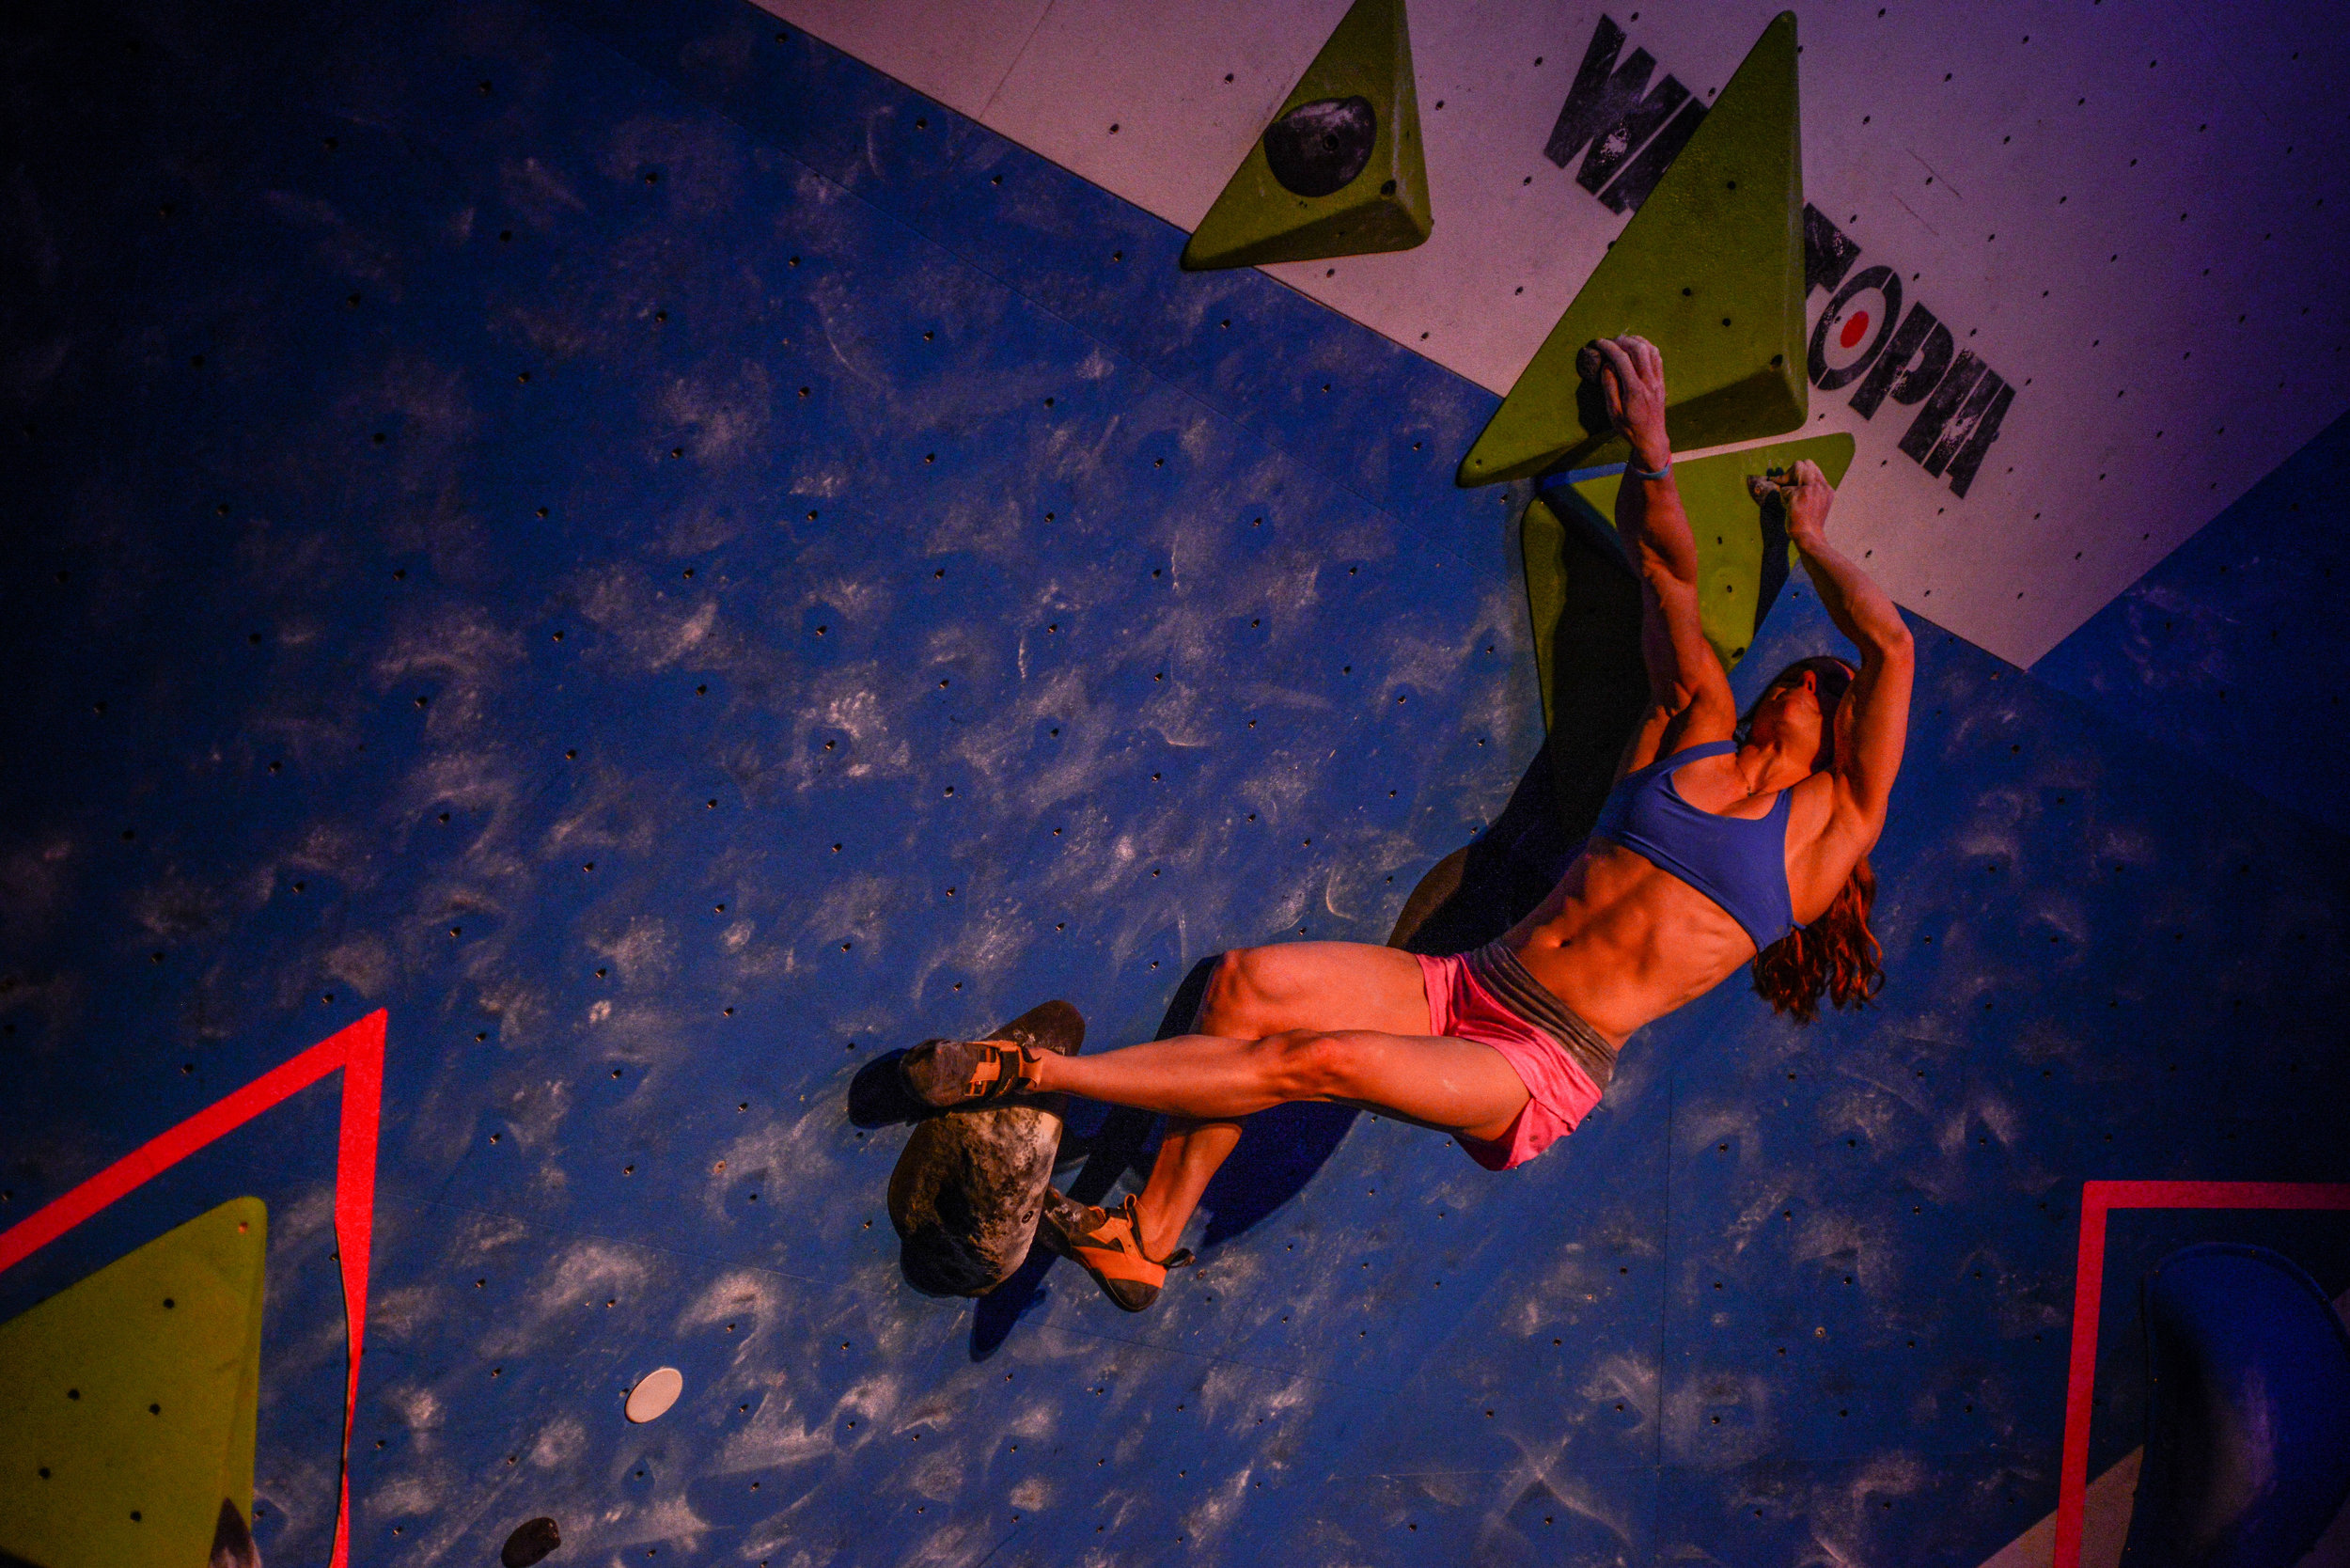 In one of the most memorable battles ever, two of the best climbers in the world, Alex Puccio and Ashima Shiraishi, went head to head in the finals round at TBS.